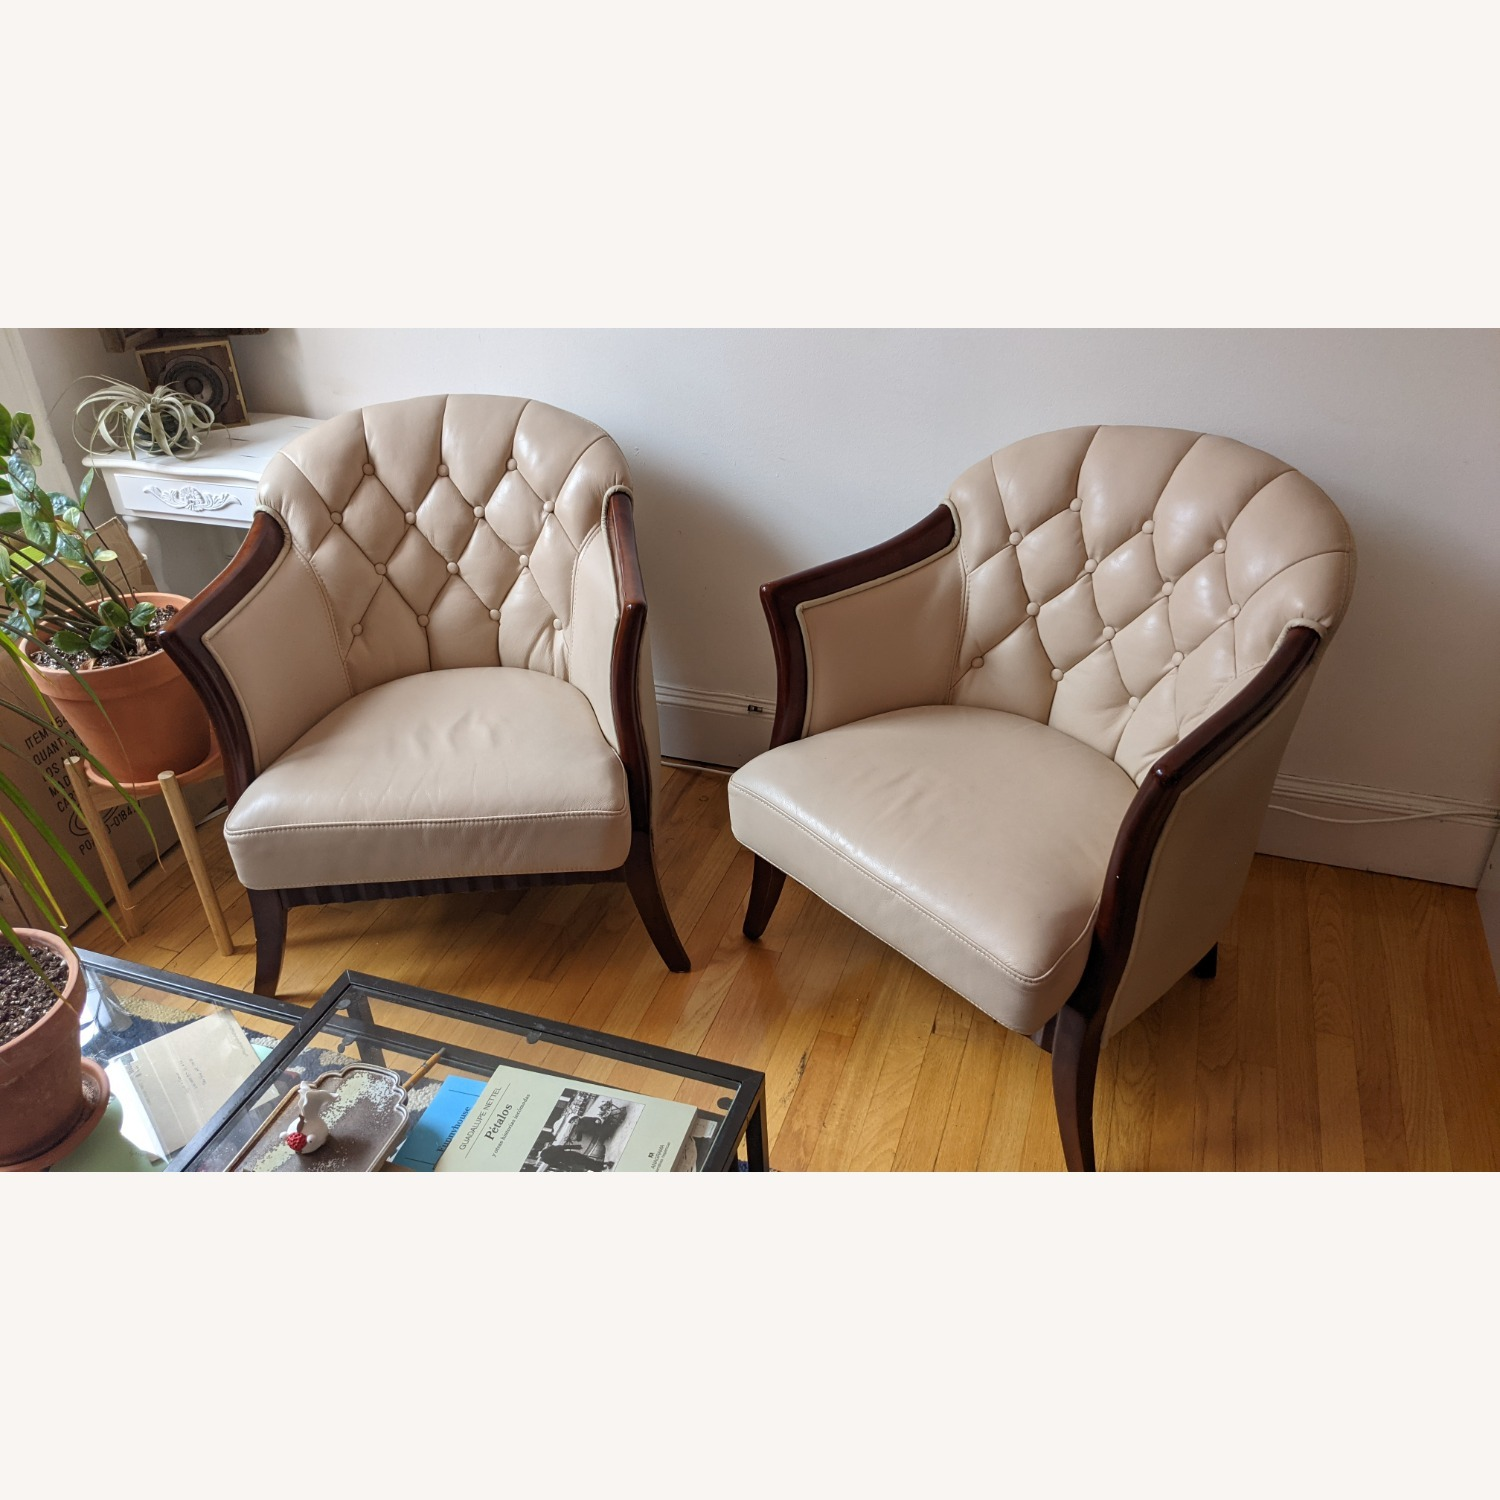 Taupe Tufted Leather Arm Chair Set - image-6